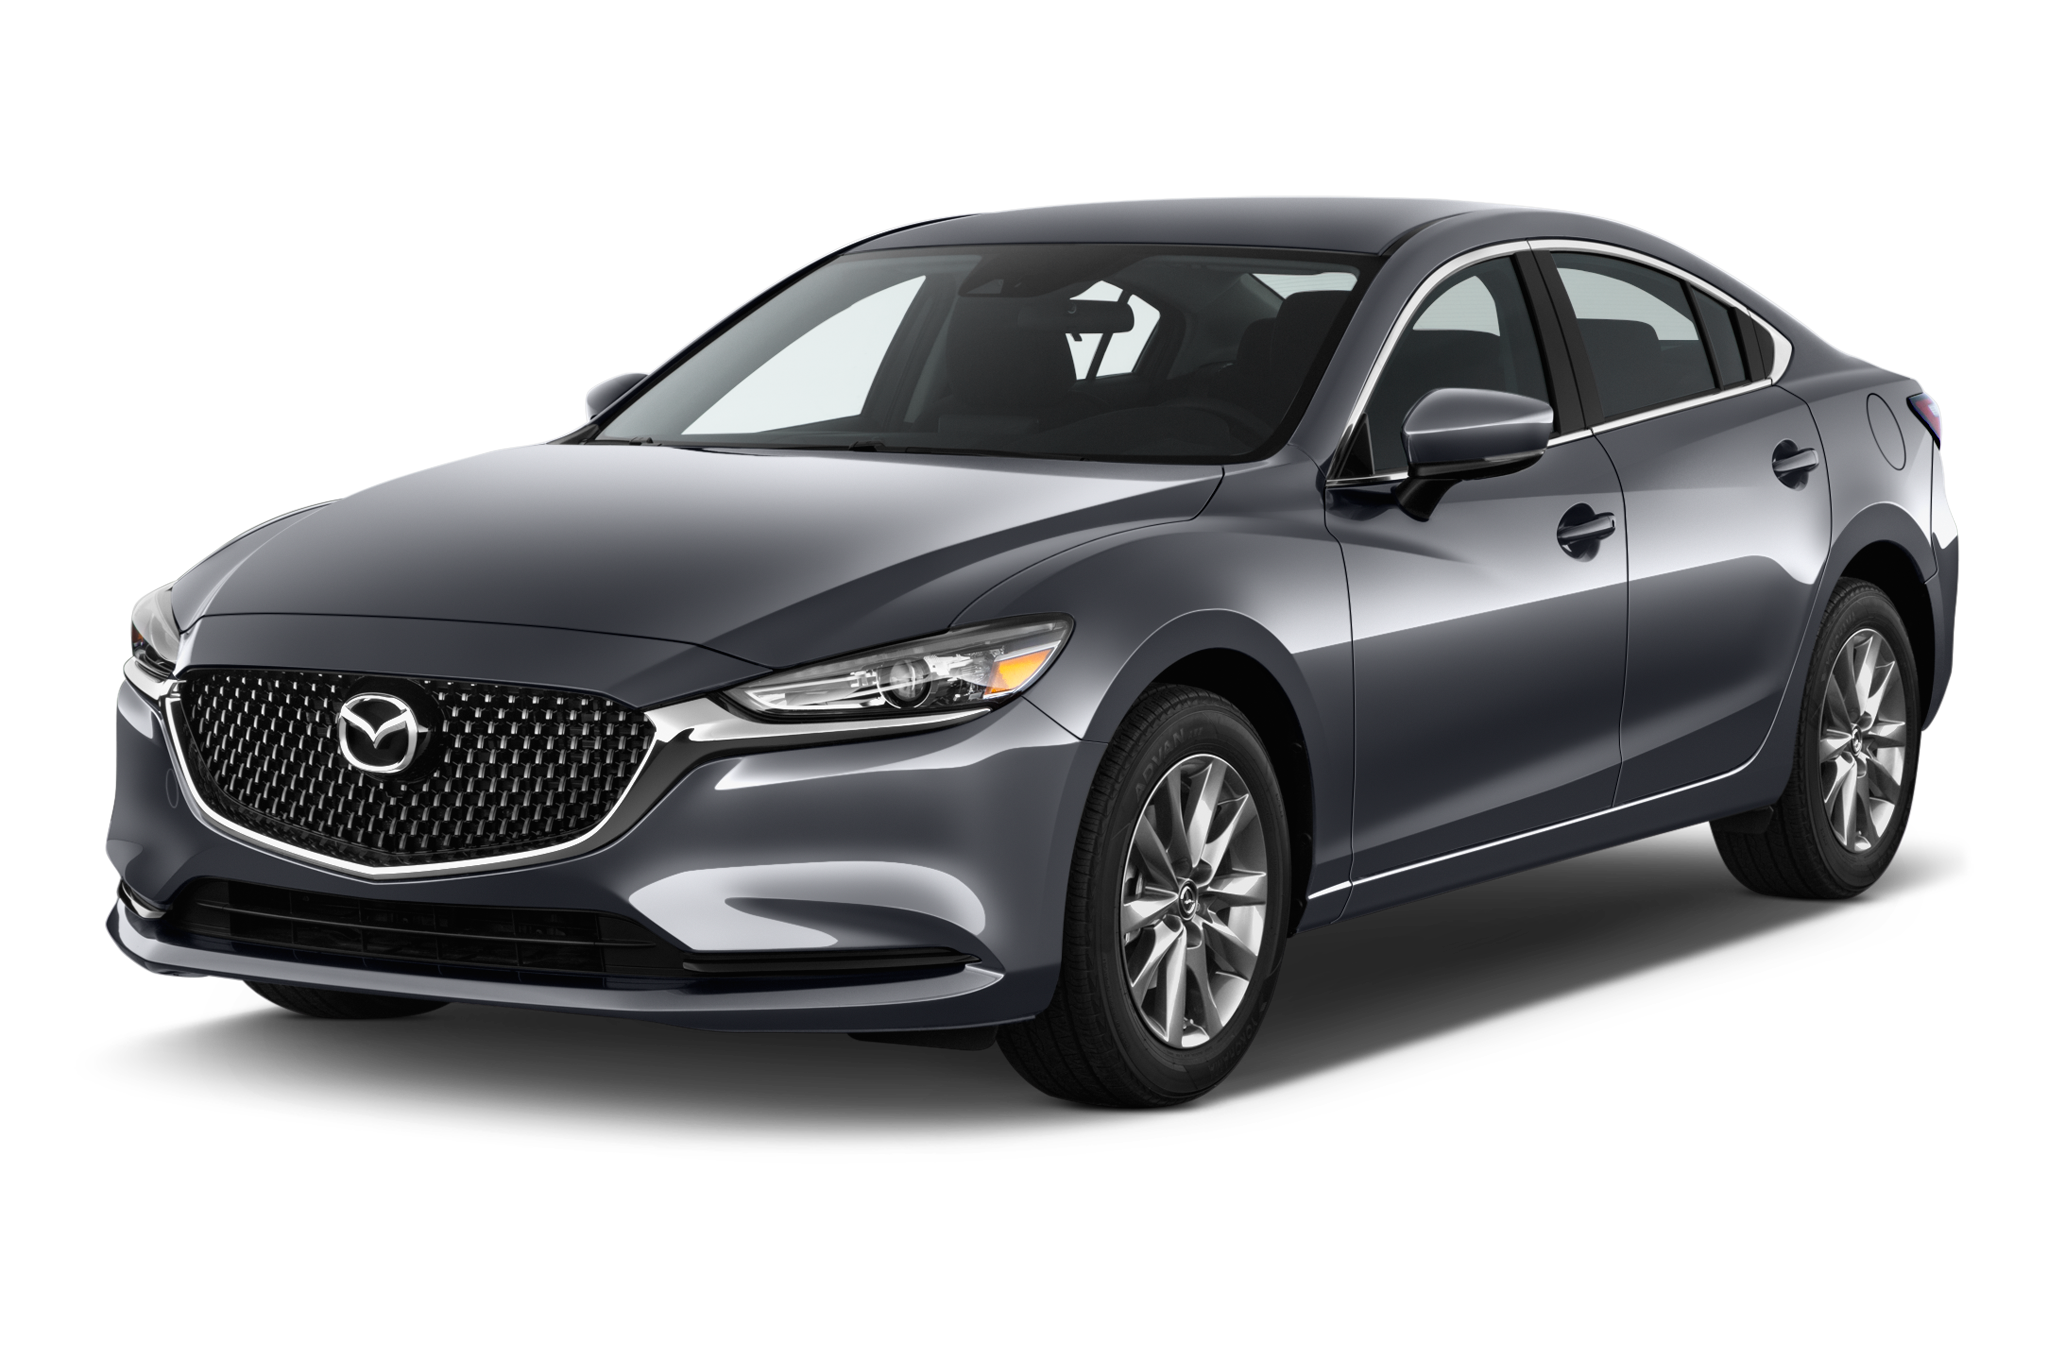 2018 mazda6 gets 23 31 mpg with 2 5 liter turbo. Black Bedroom Furniture Sets. Home Design Ideas